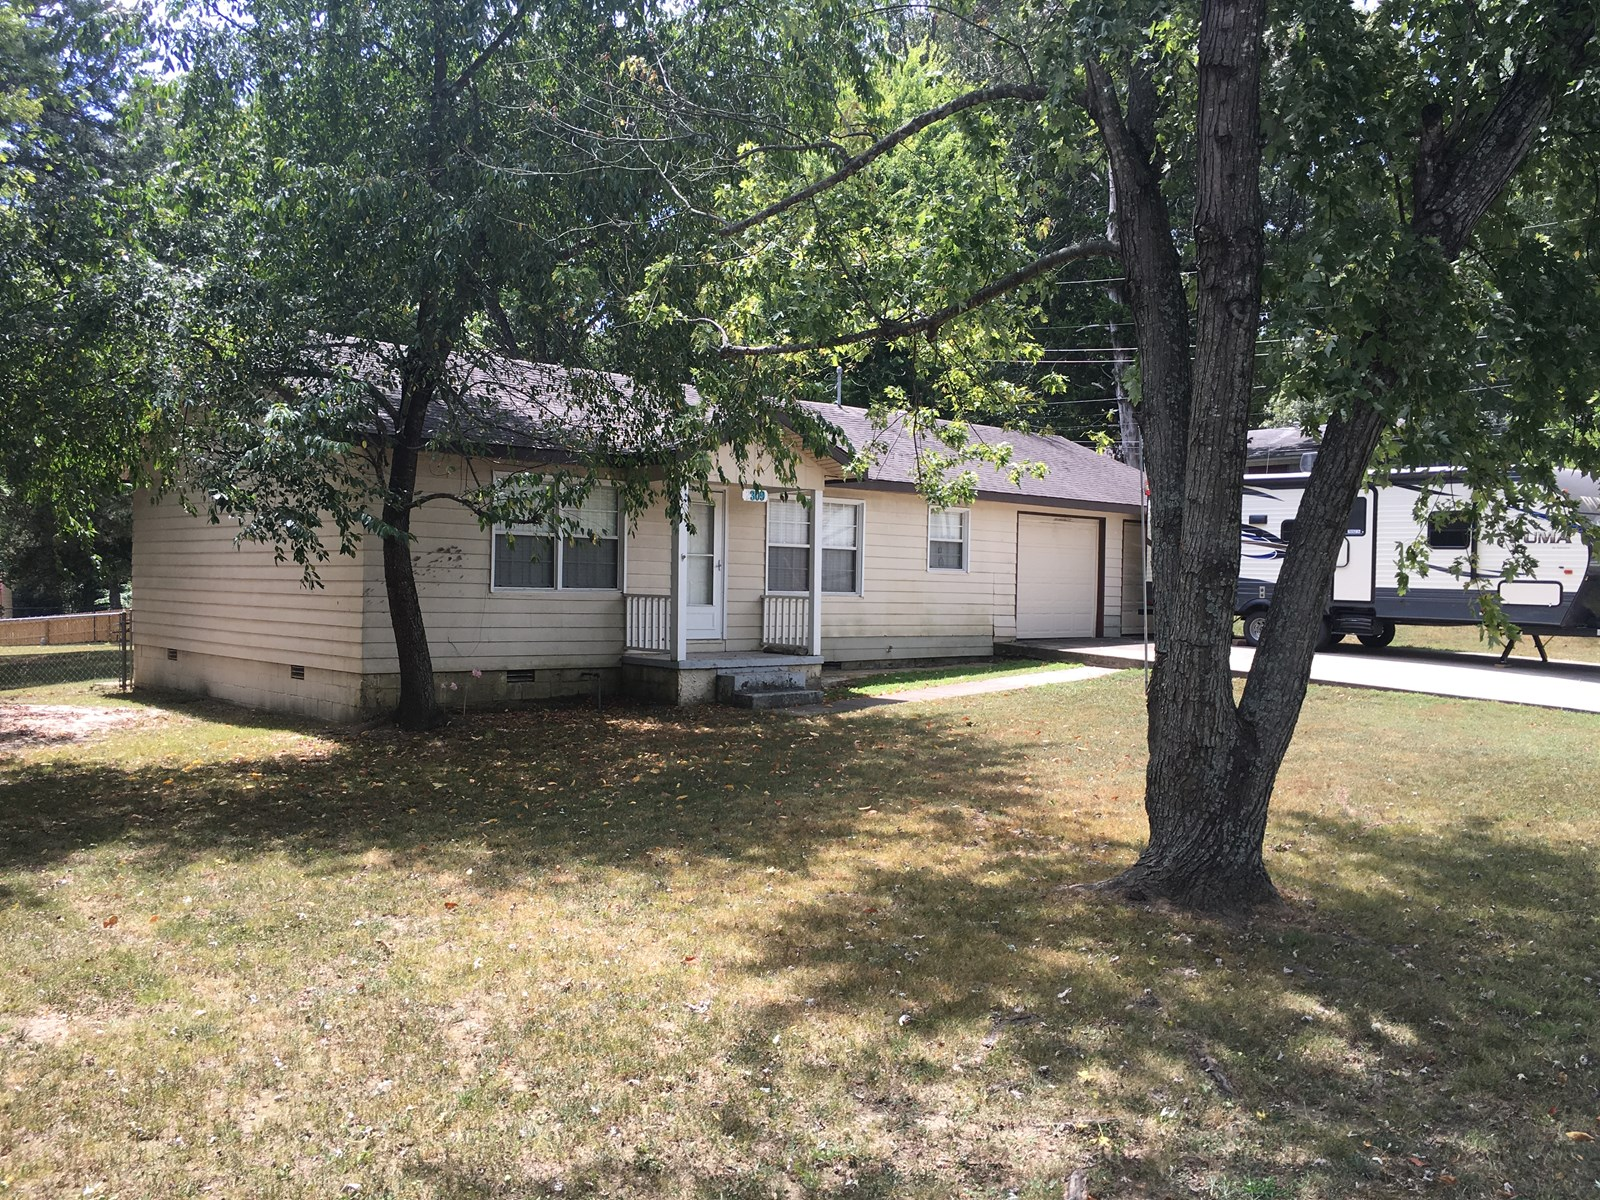 HOME IN TOWN FOR SALE, NORTH ARKANSAS, POCAHONTAS, AR